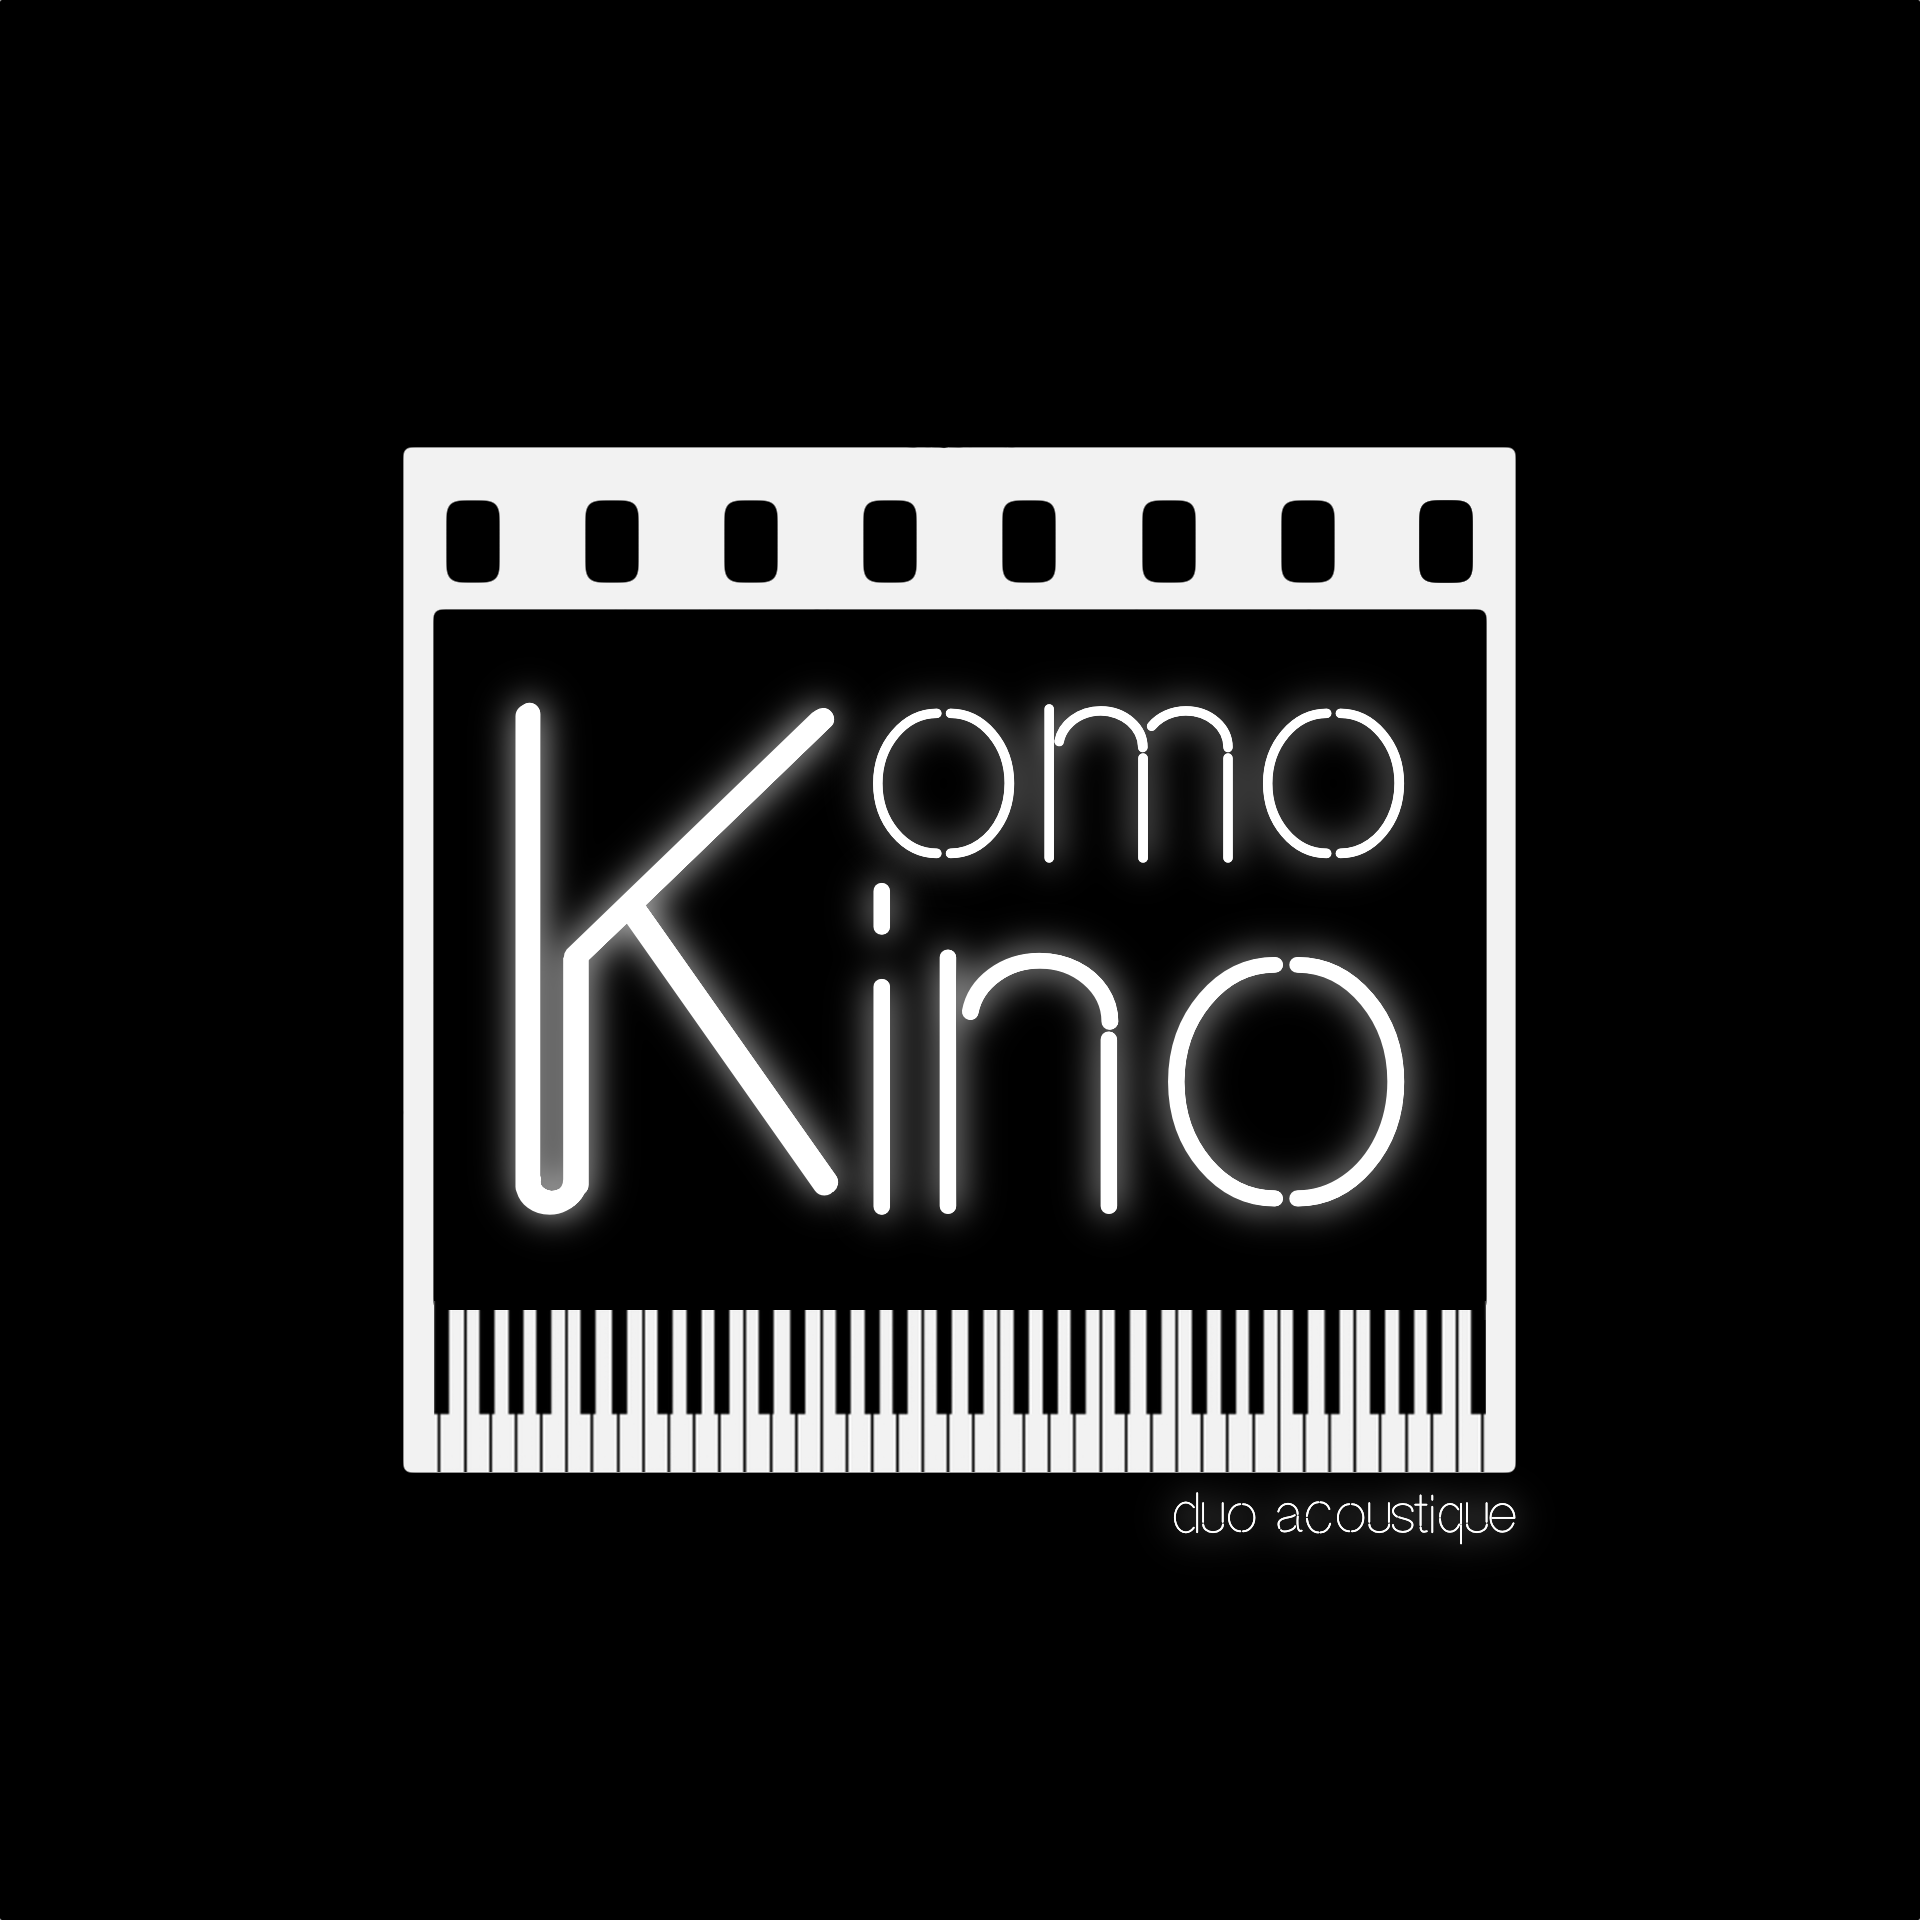 KomoKino - Duo d'animation